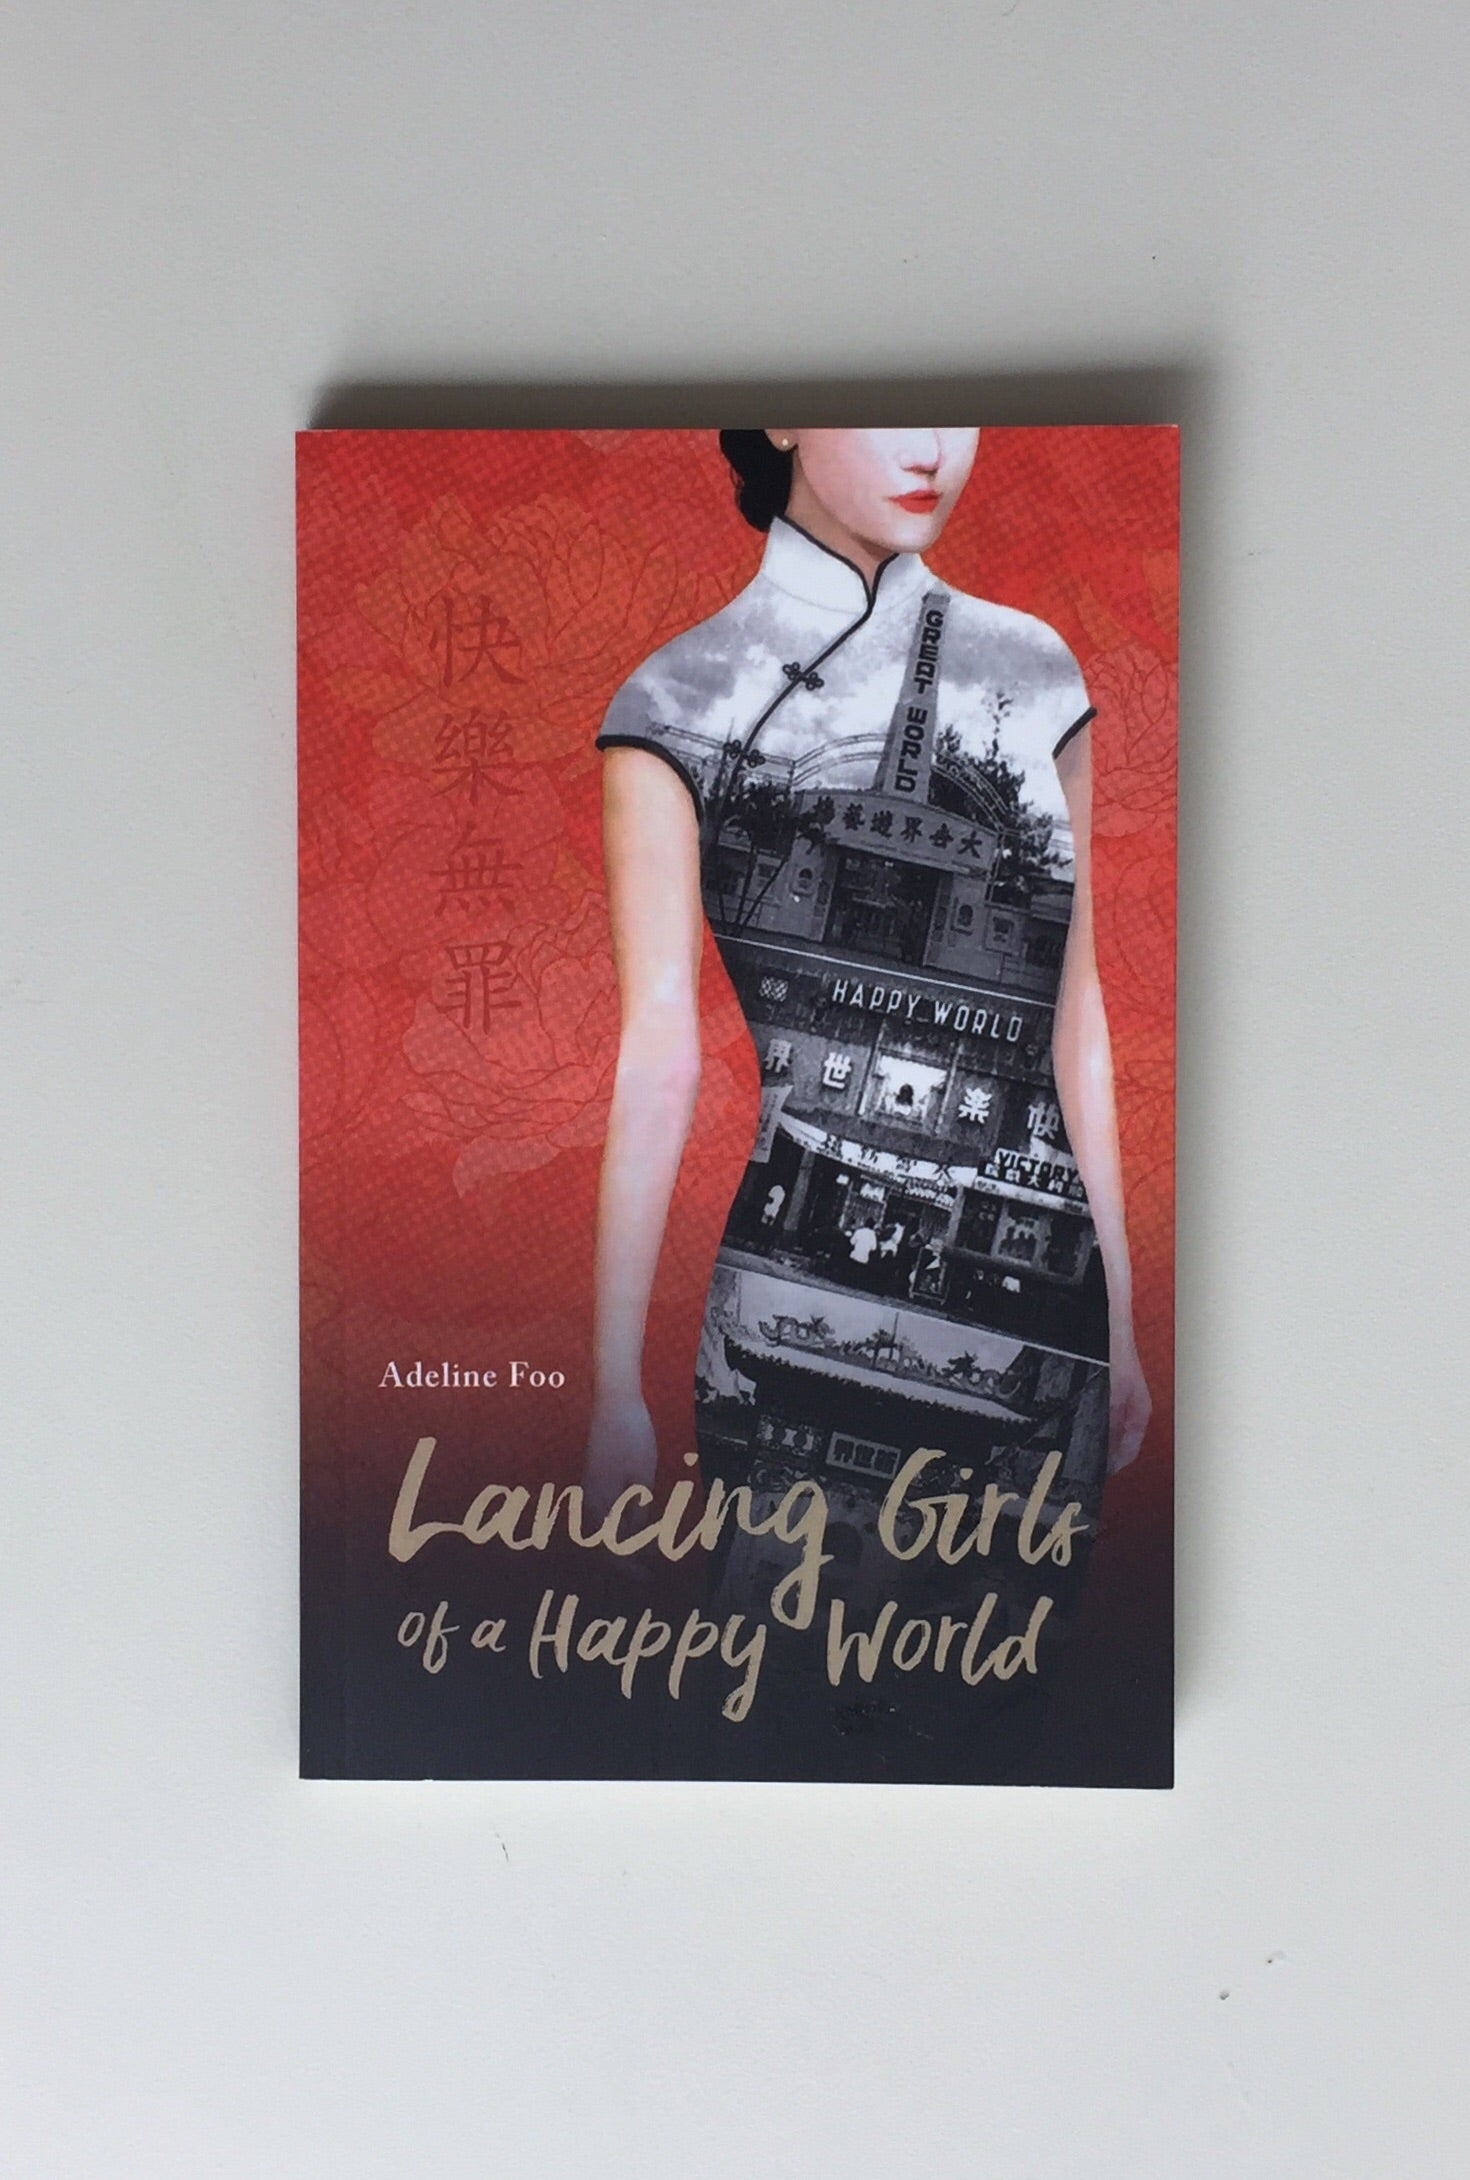 Lancing Girls of a Happy World by Adeline Foo